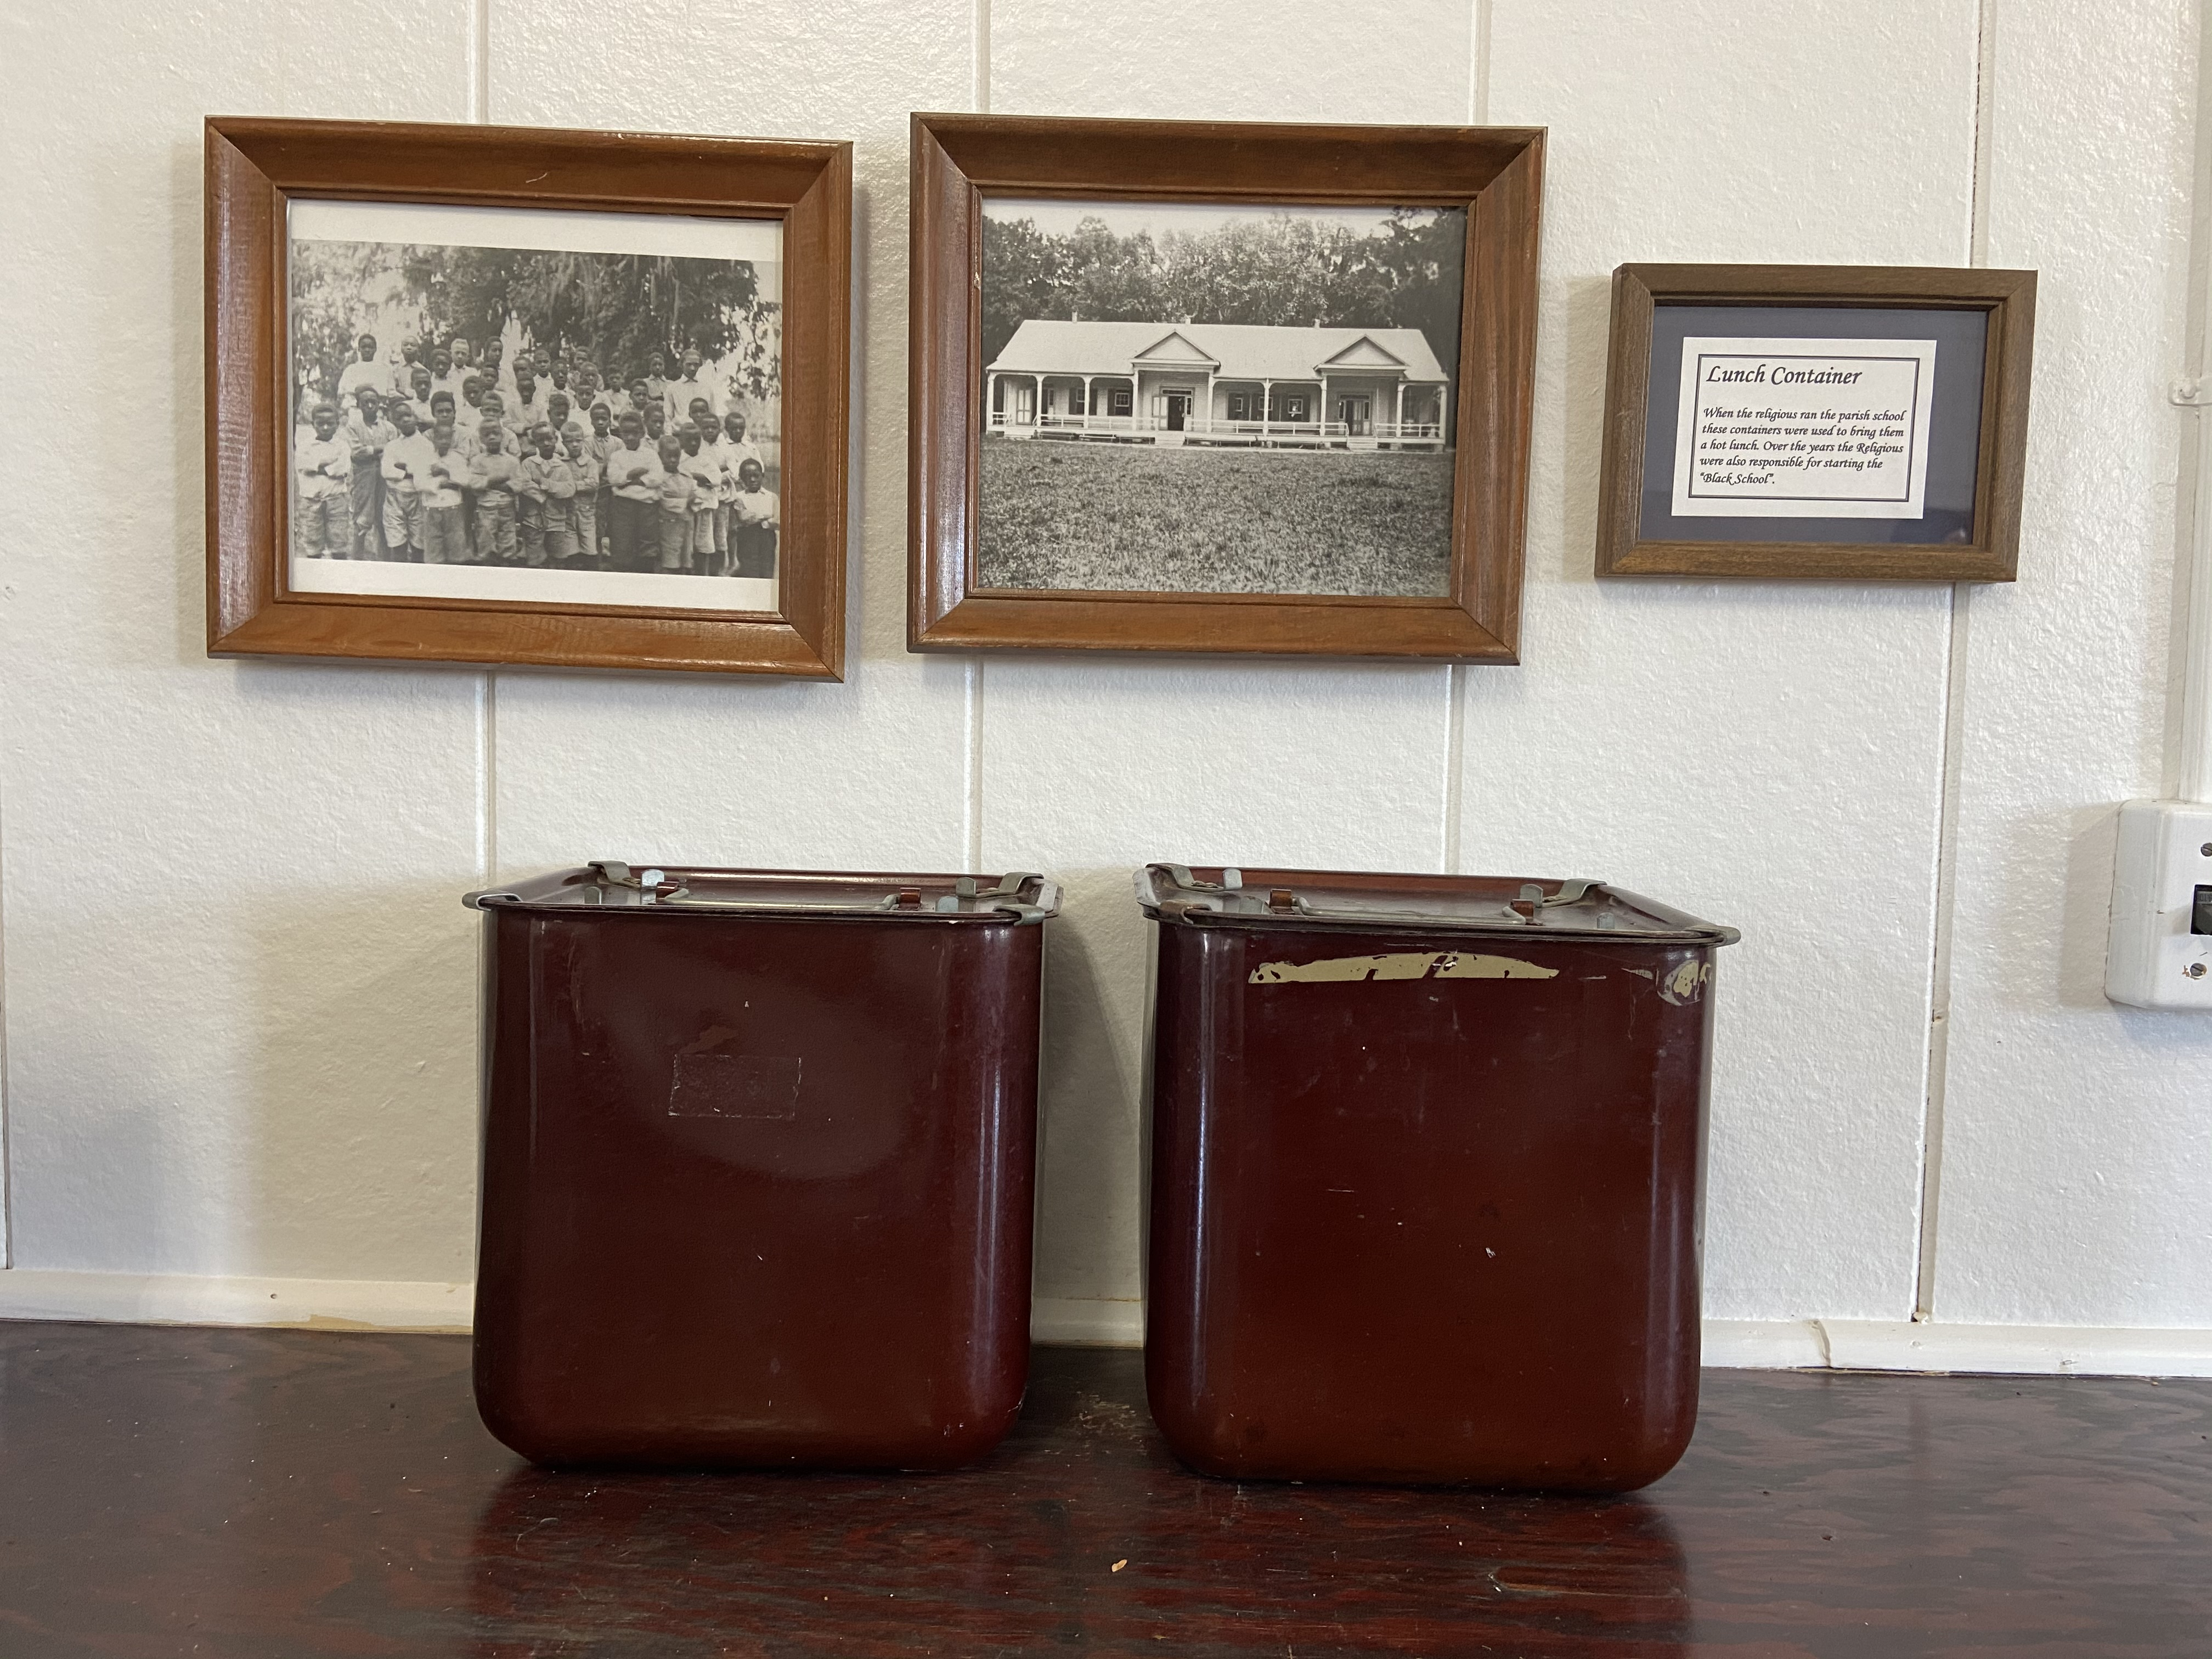 When the Religious of the Sacred Heart operated the parish school as well as the African American school in Grand Coteau, they traveled to and from the convent with their lunch in these containers.